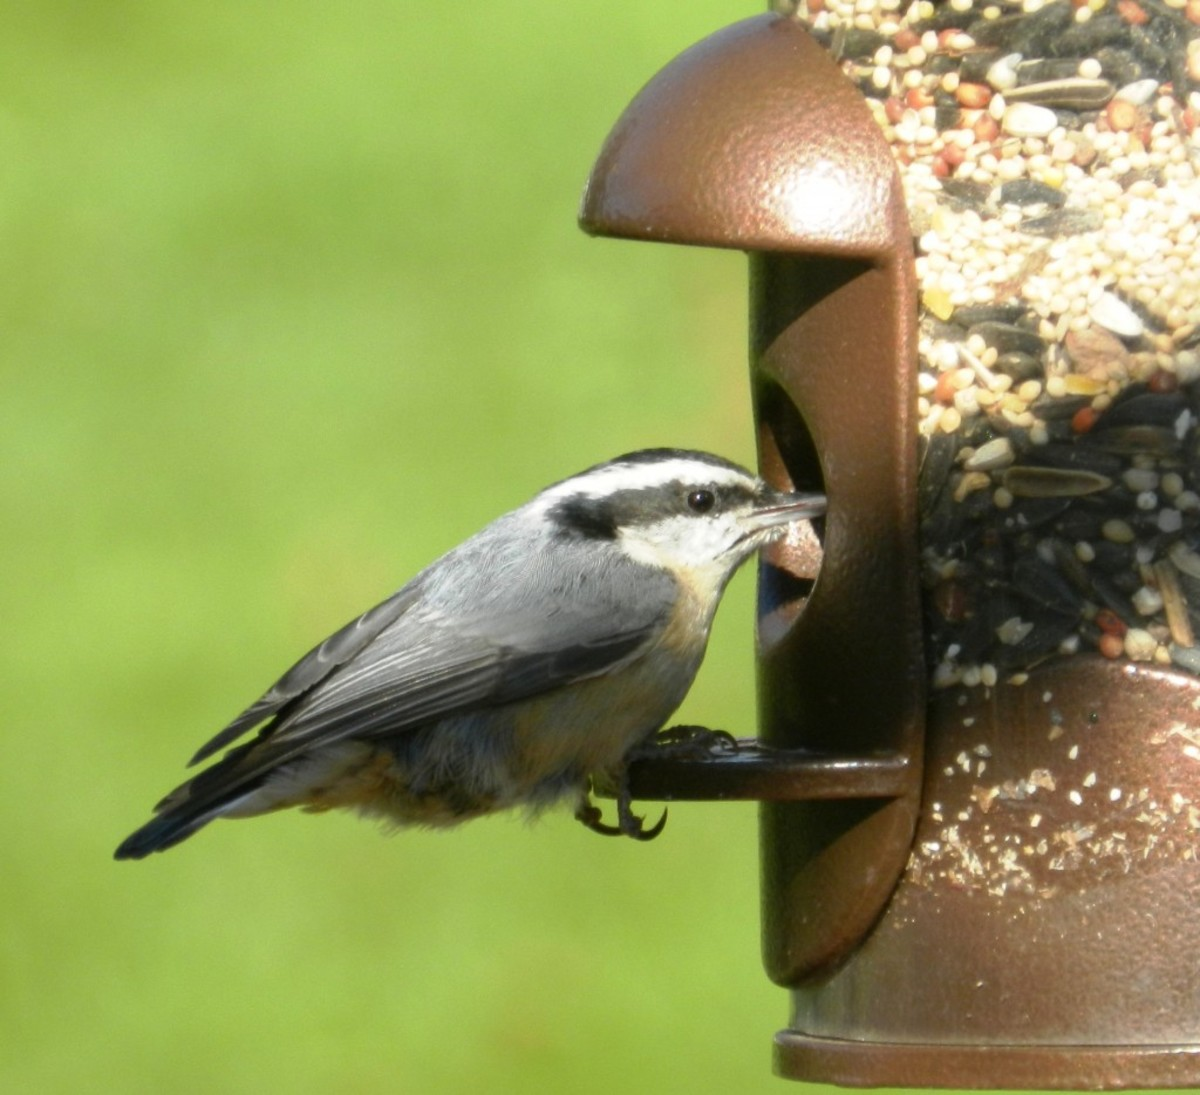 Red-Breasted Nuthatch at Feeder